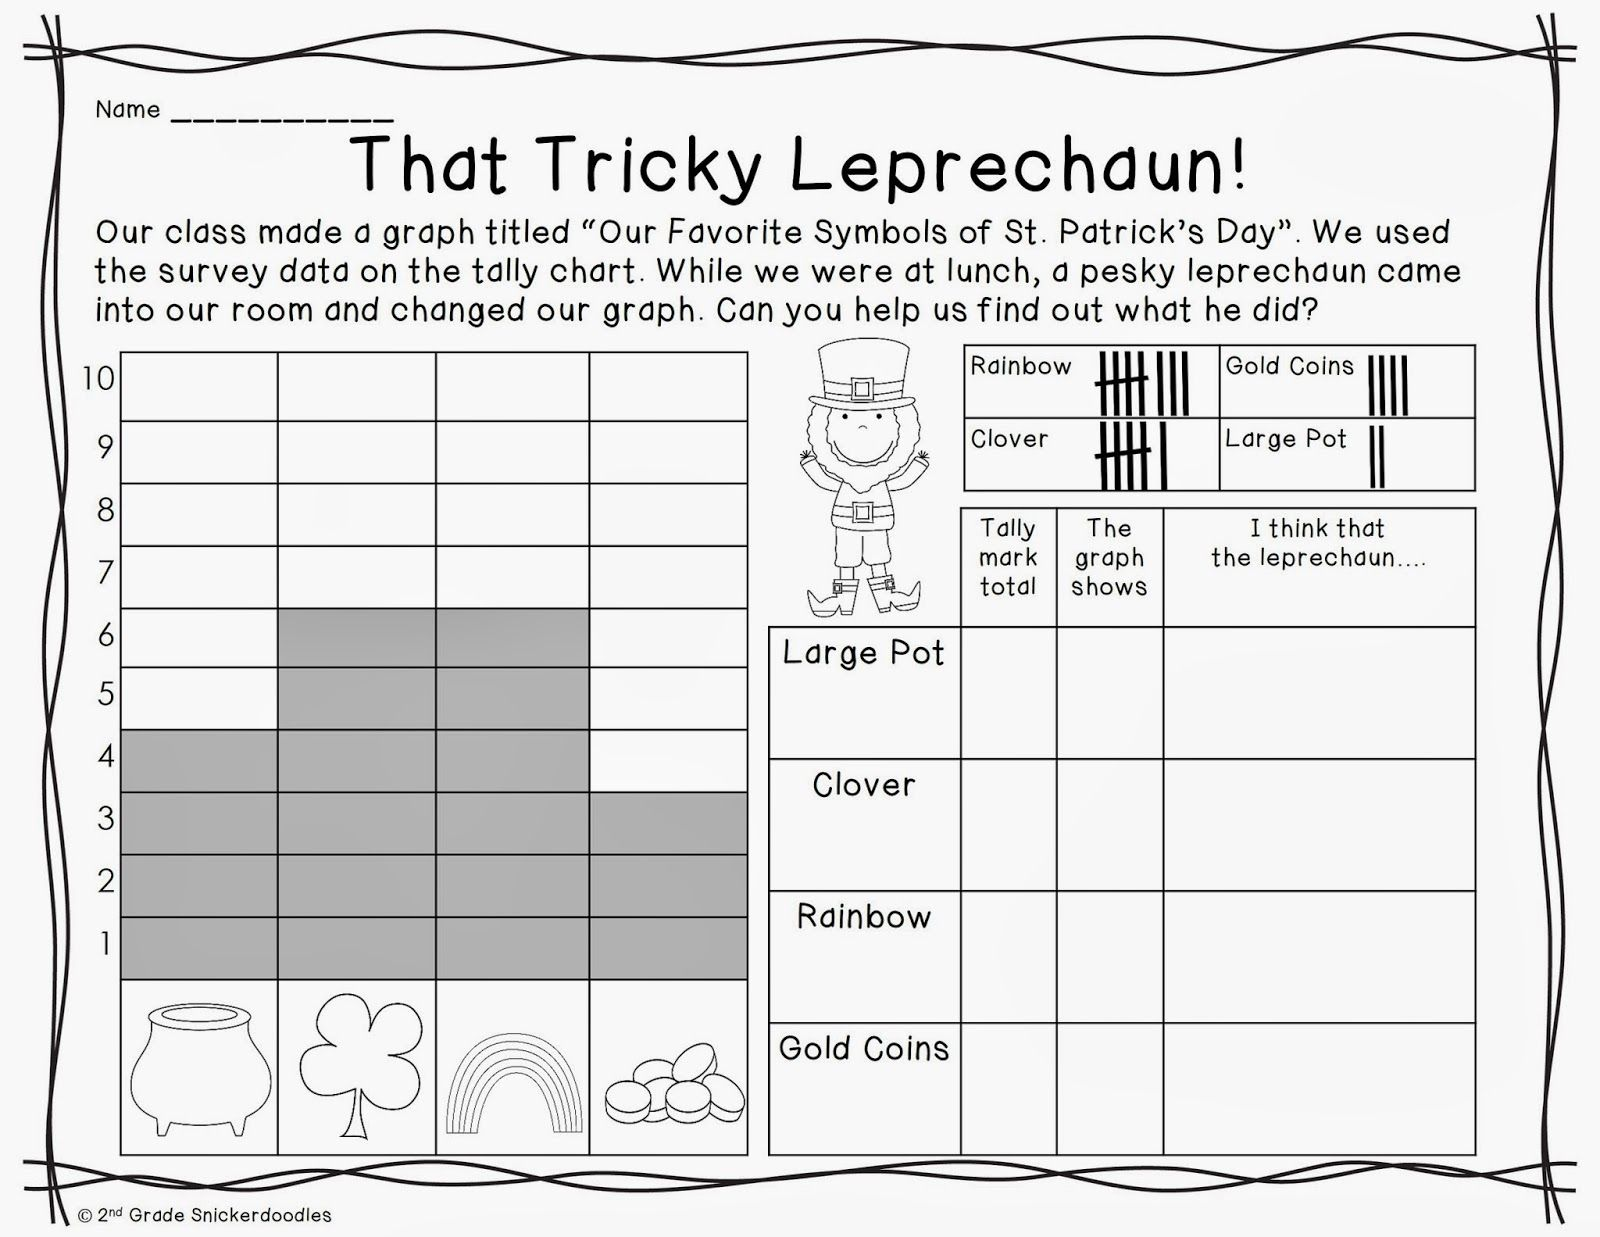 Free Graphing Activities By 2nd Grade Snickerdoodles